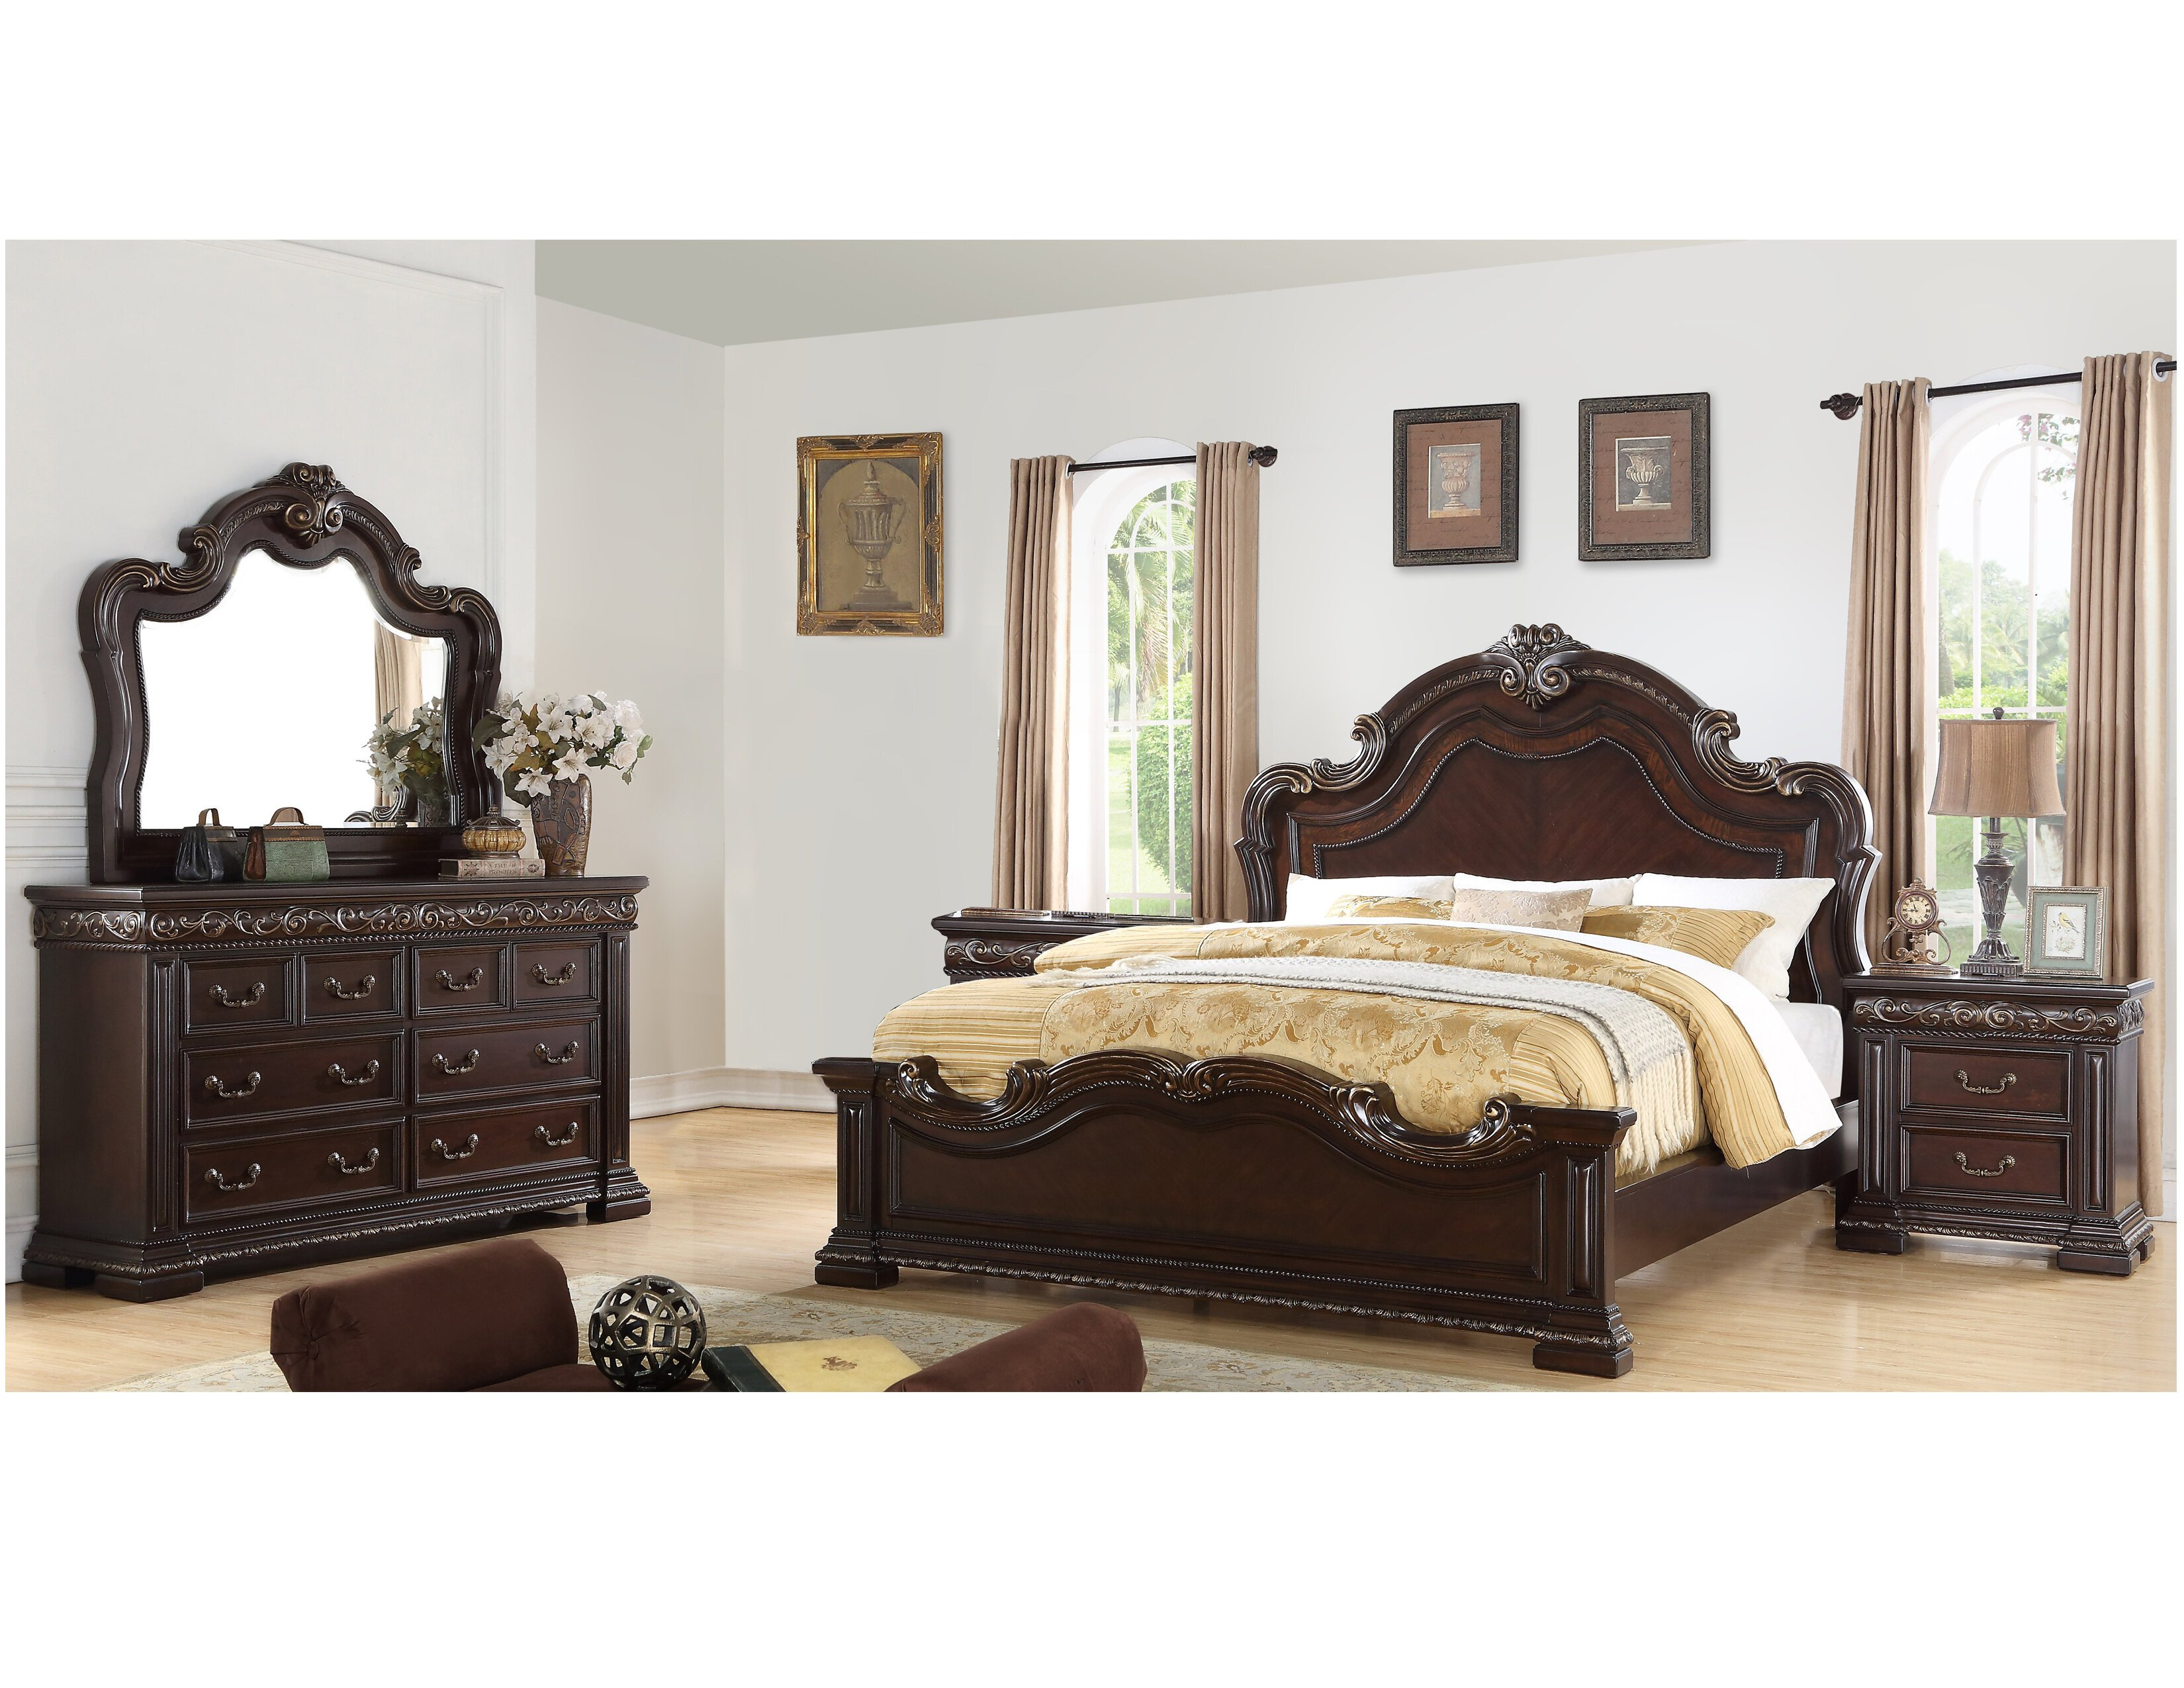 Solid Cherry Wood Bedroom Furniture New Bannruod Standard solid Wood 5 Piece Bedroom Set